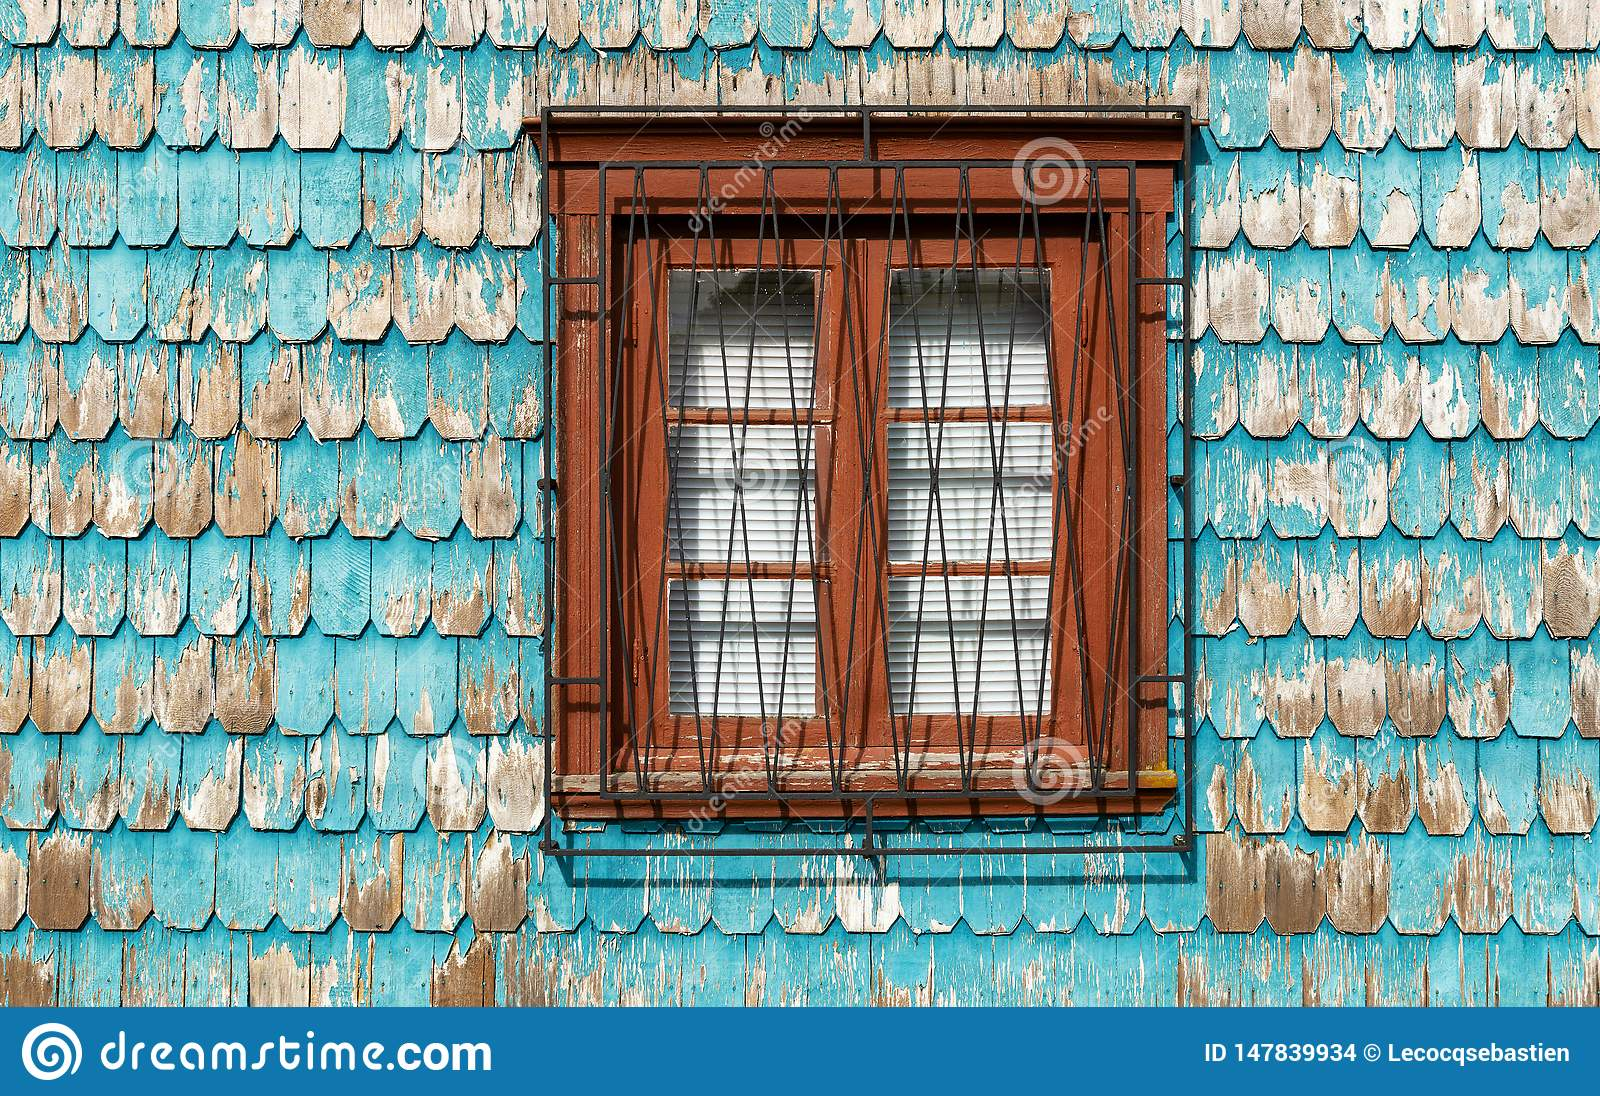 Window with turquoise wood paneling facade, Chile